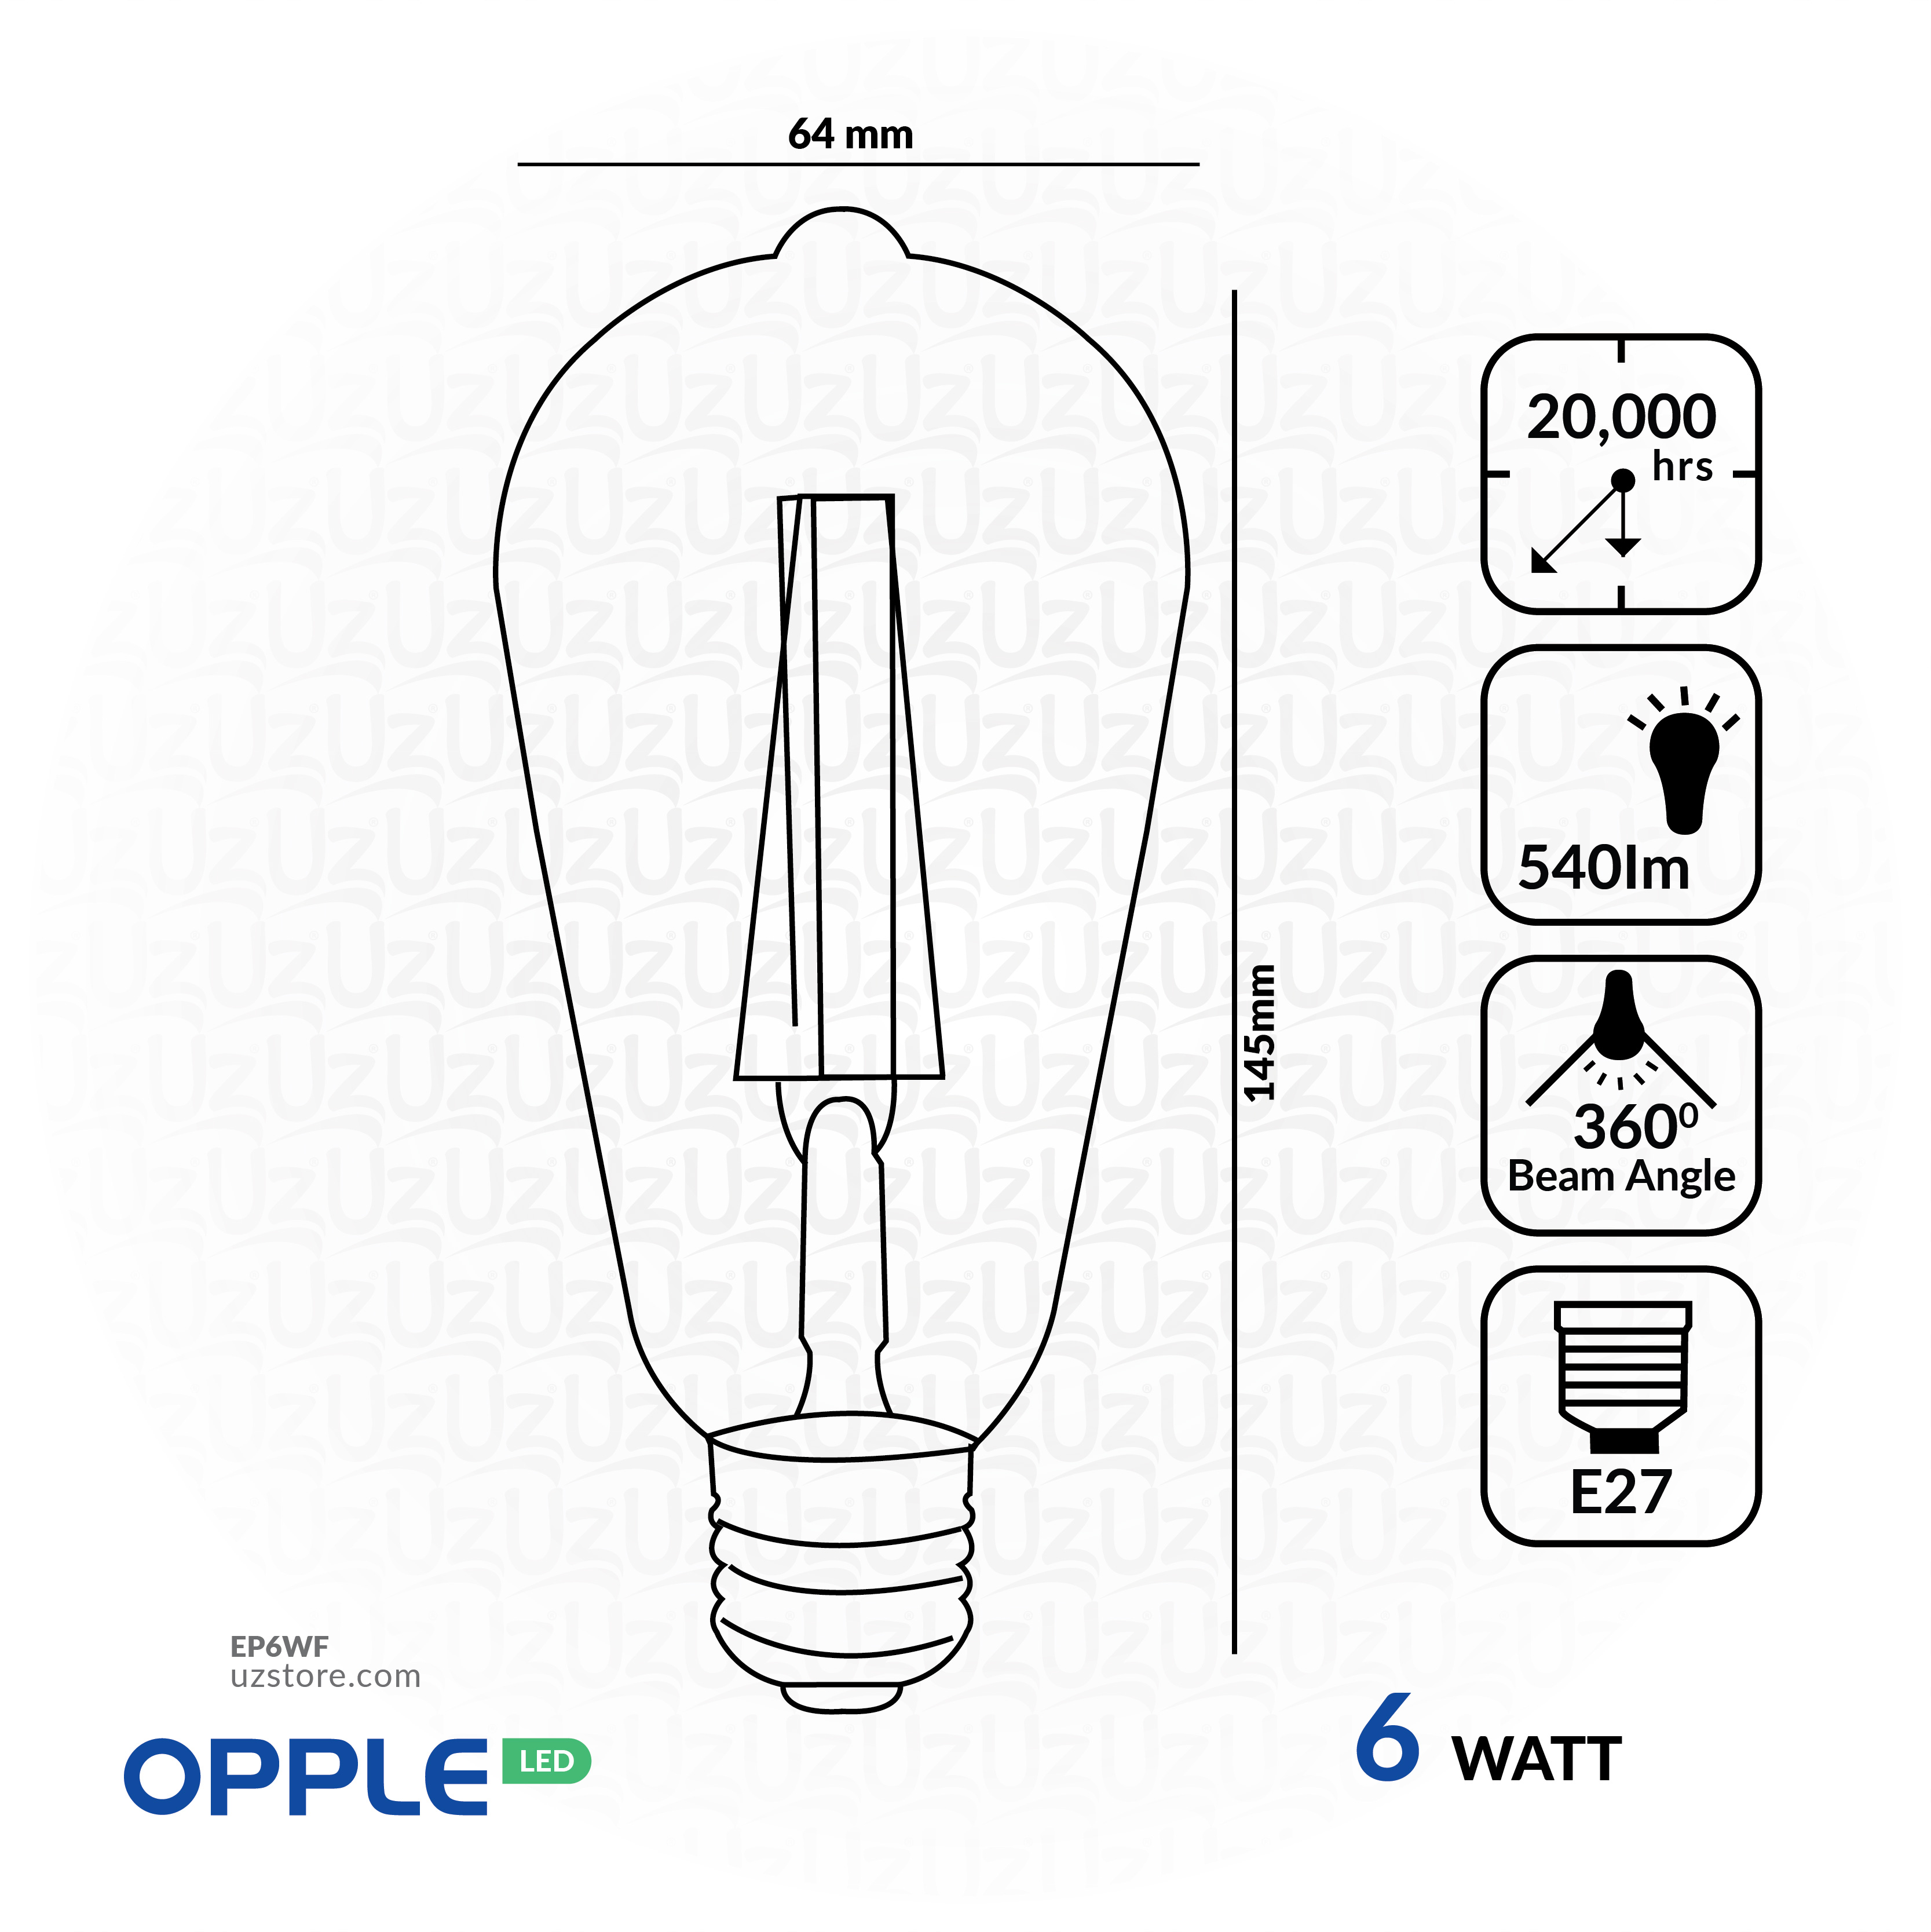 OPPLE LED Filament Lamp 6W Warm White E27